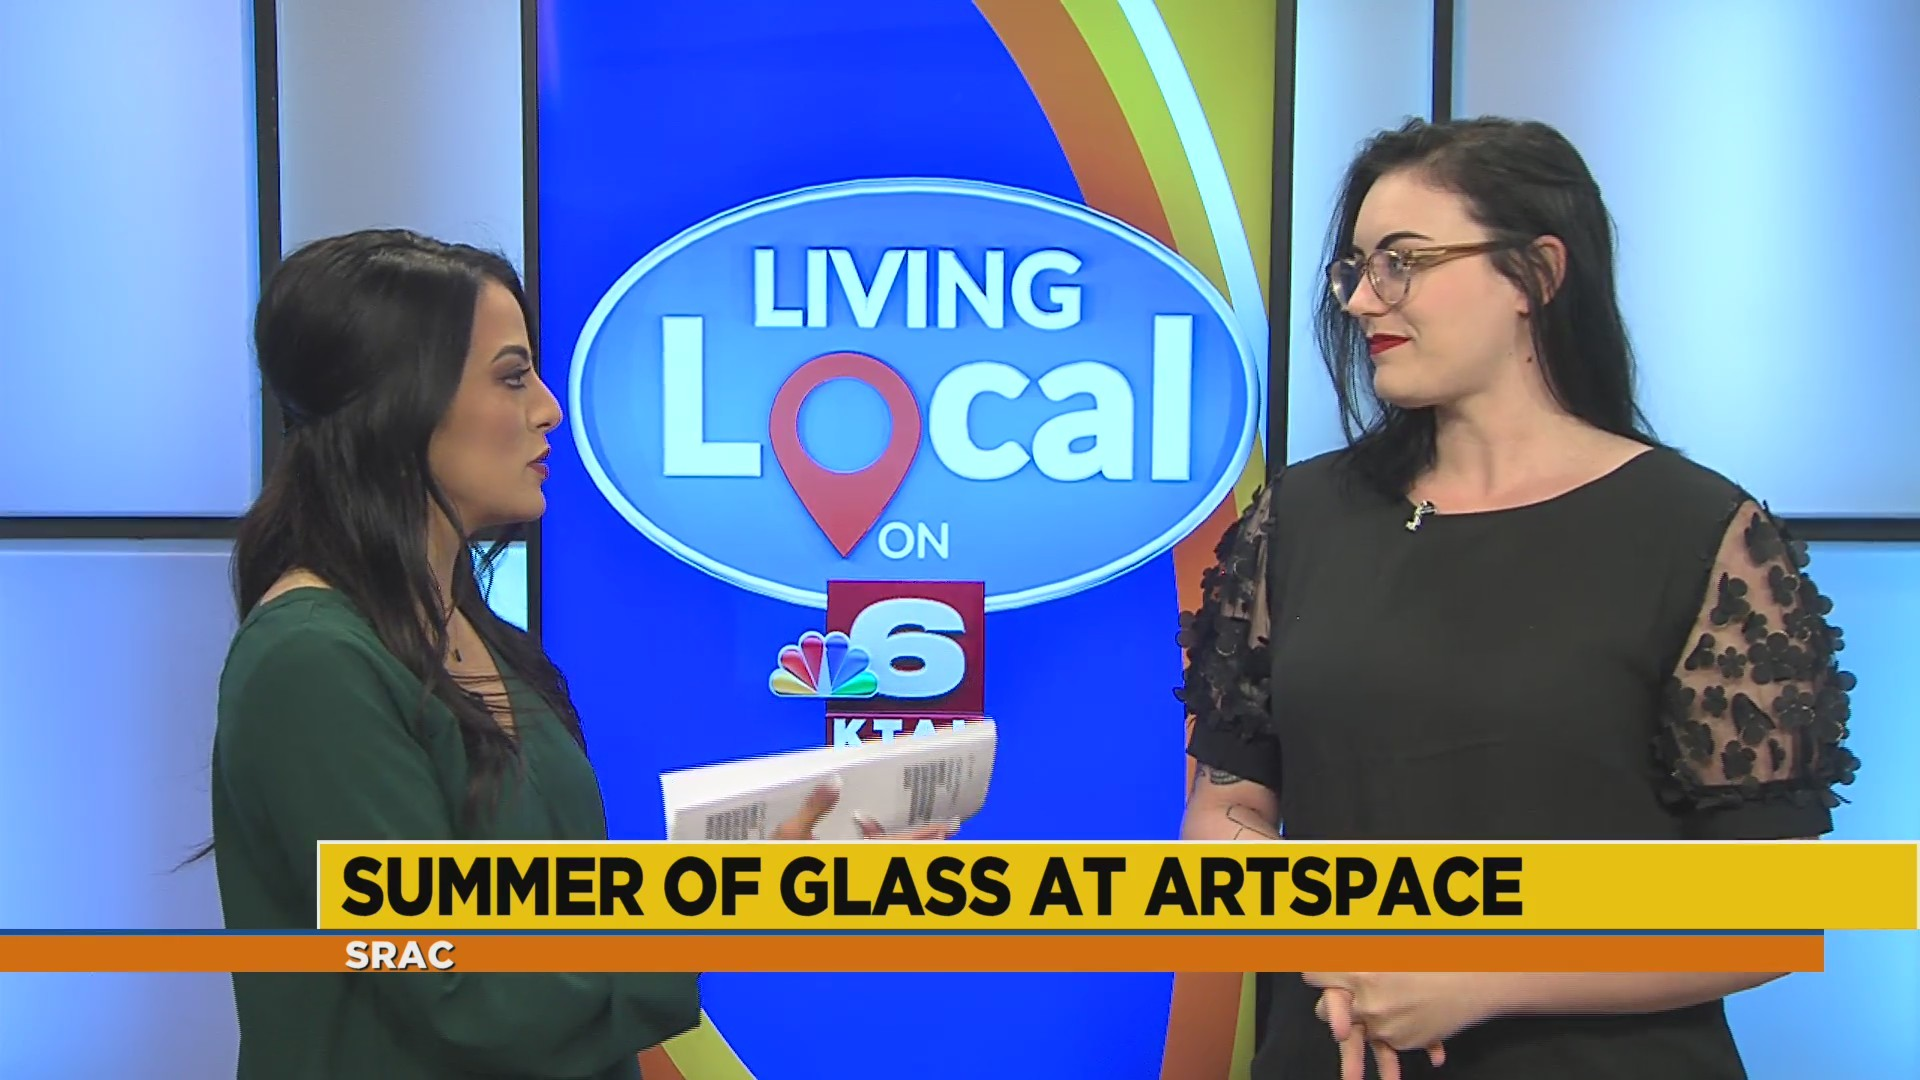 Summer of Glass at Artspace